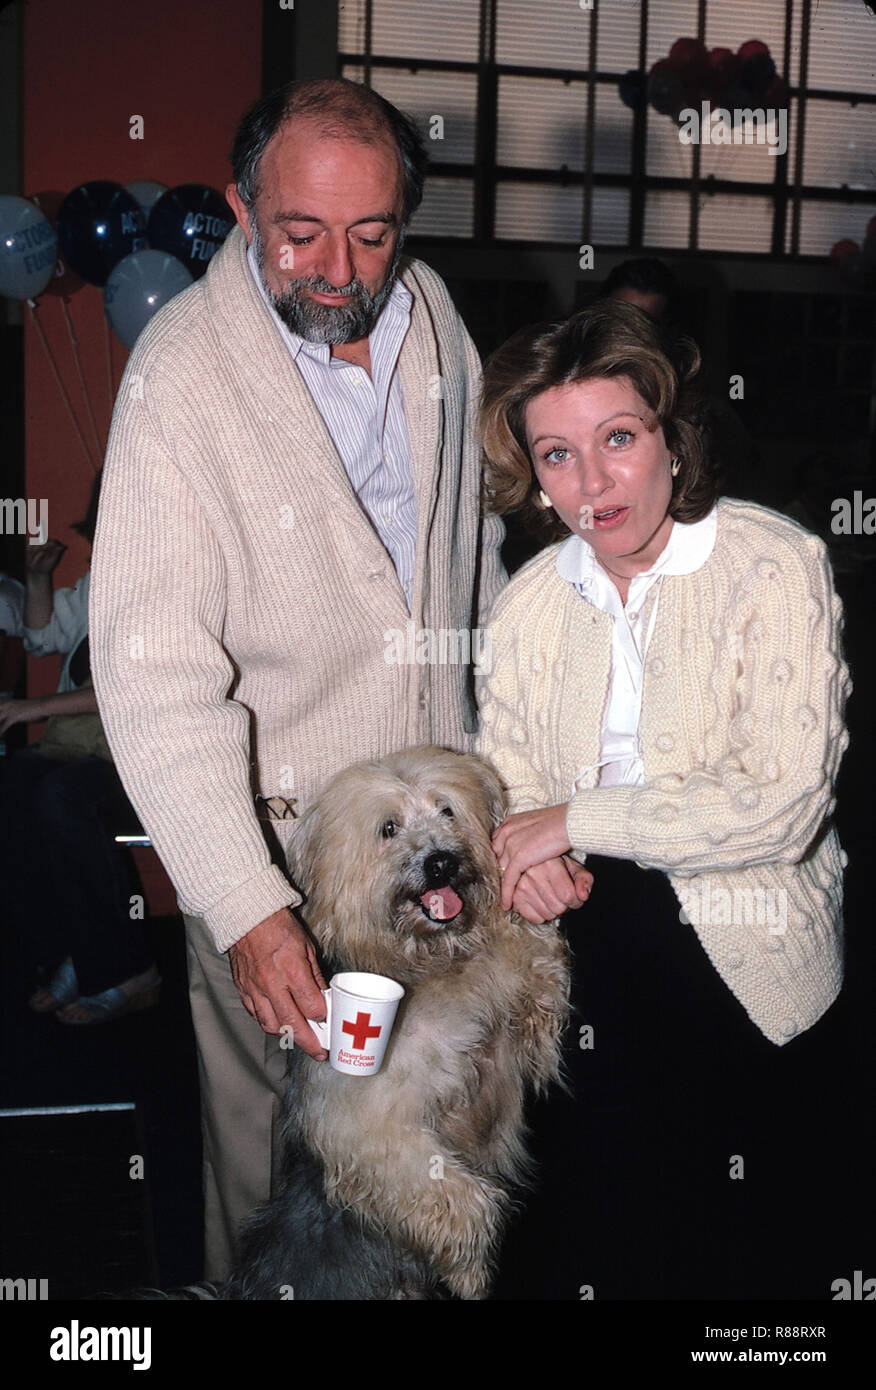 Patty Duke with her husband John Astin with Dog Attending a Blood Drive at the Actors Fund in Los Angeles, California onSeptember 1982. Credit: Walter McBride /MediaPunch - Stock Image